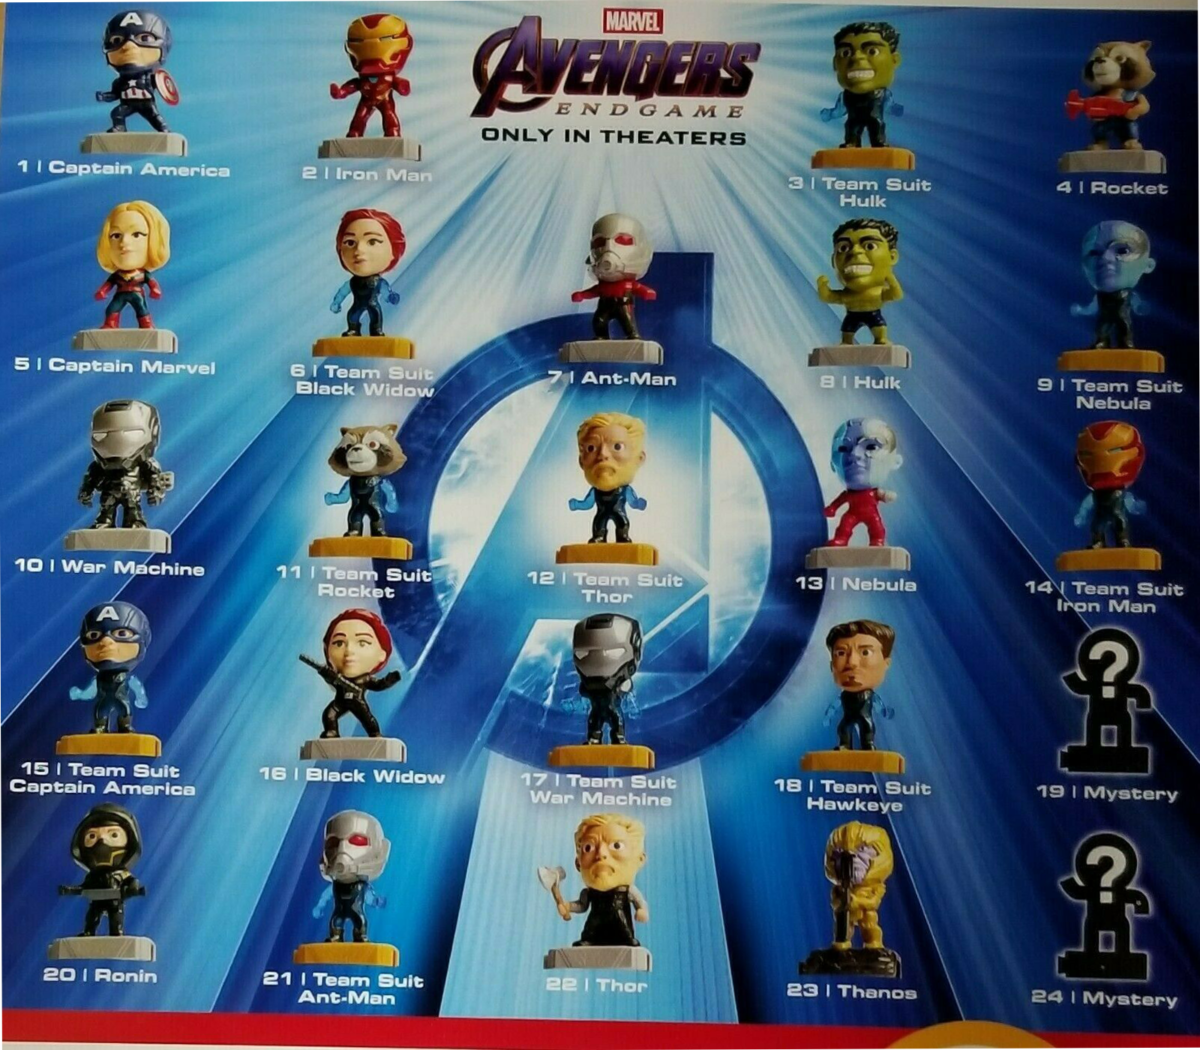 Marvel's Endgame Toys At McDonald's 3